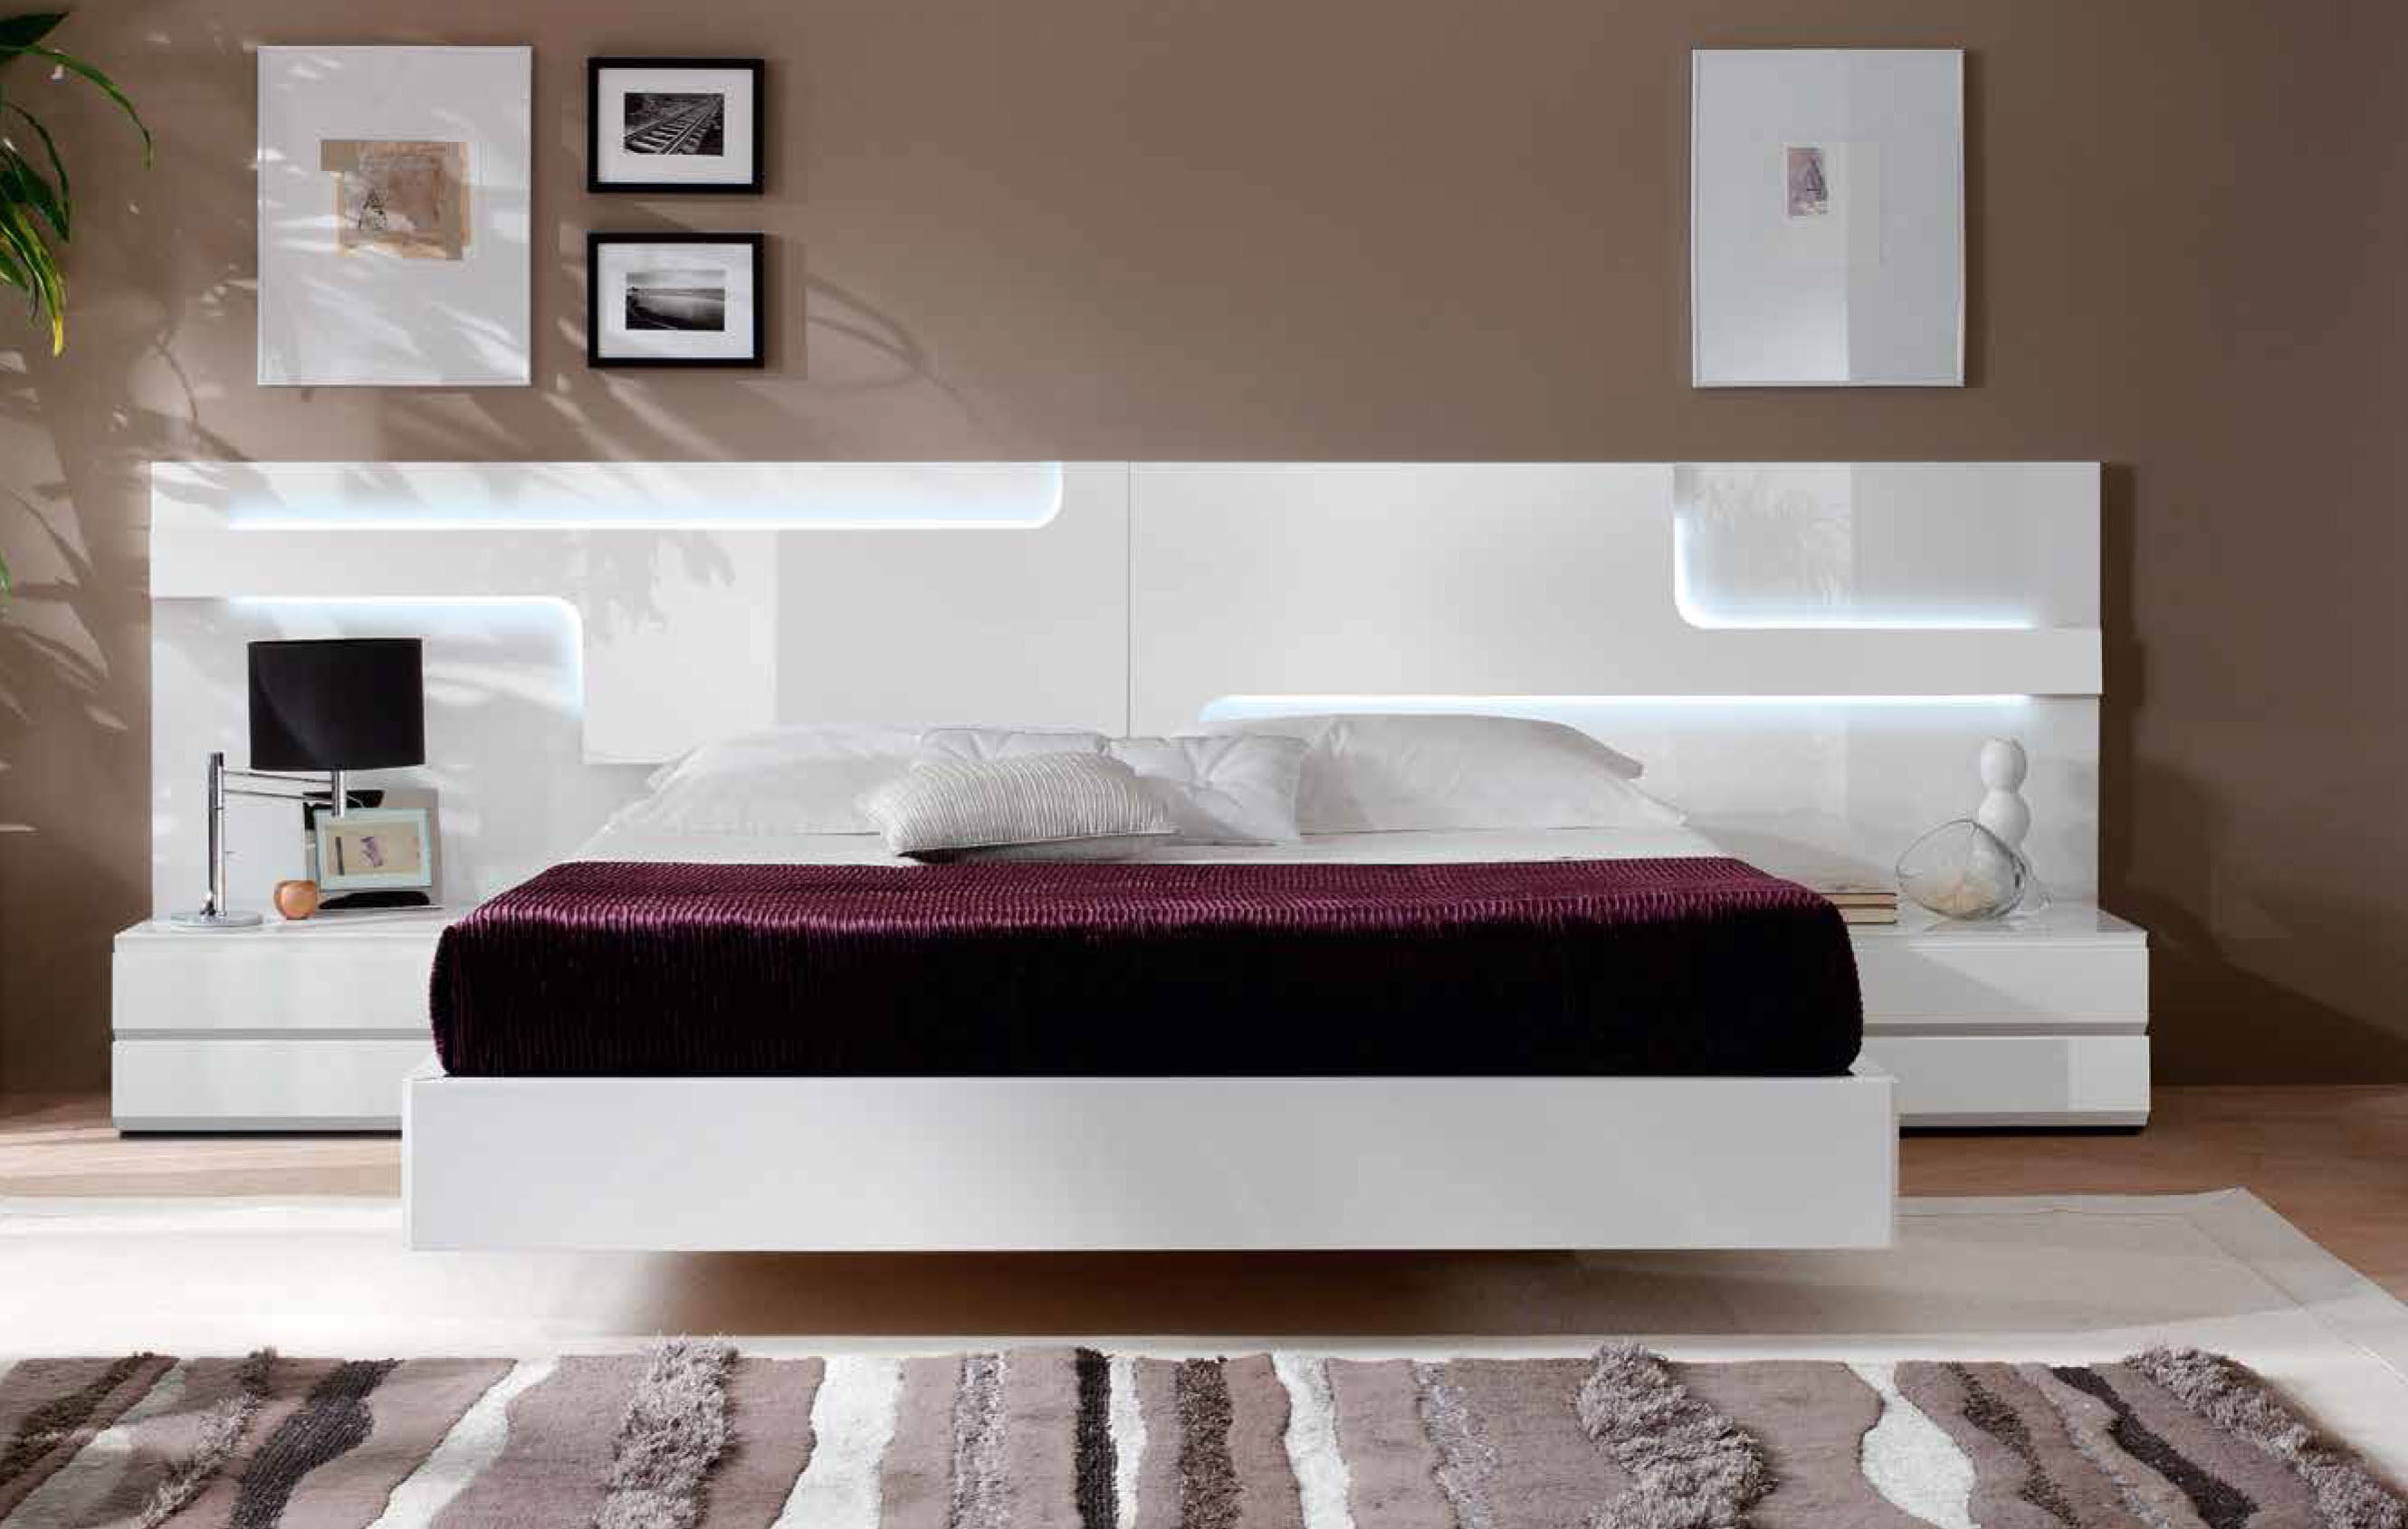 White Floating Bed and Nighstands Used as Modern Bedroom Furniture in Spacious Room with Wide Carpet